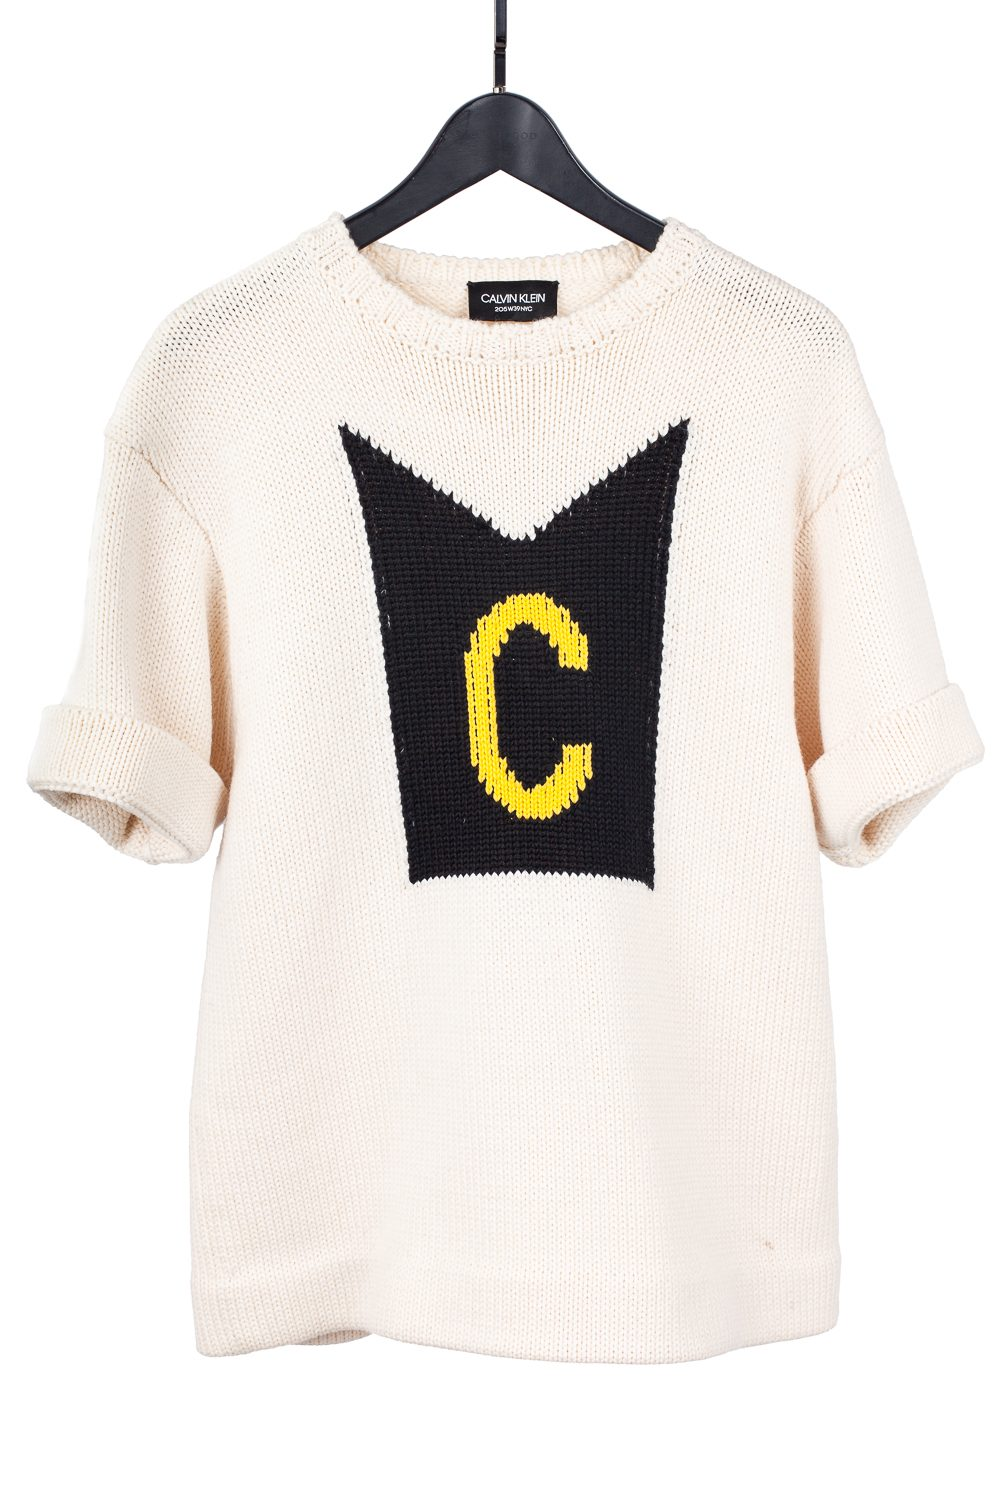 "Sample Knit ""C"" Crewneck"